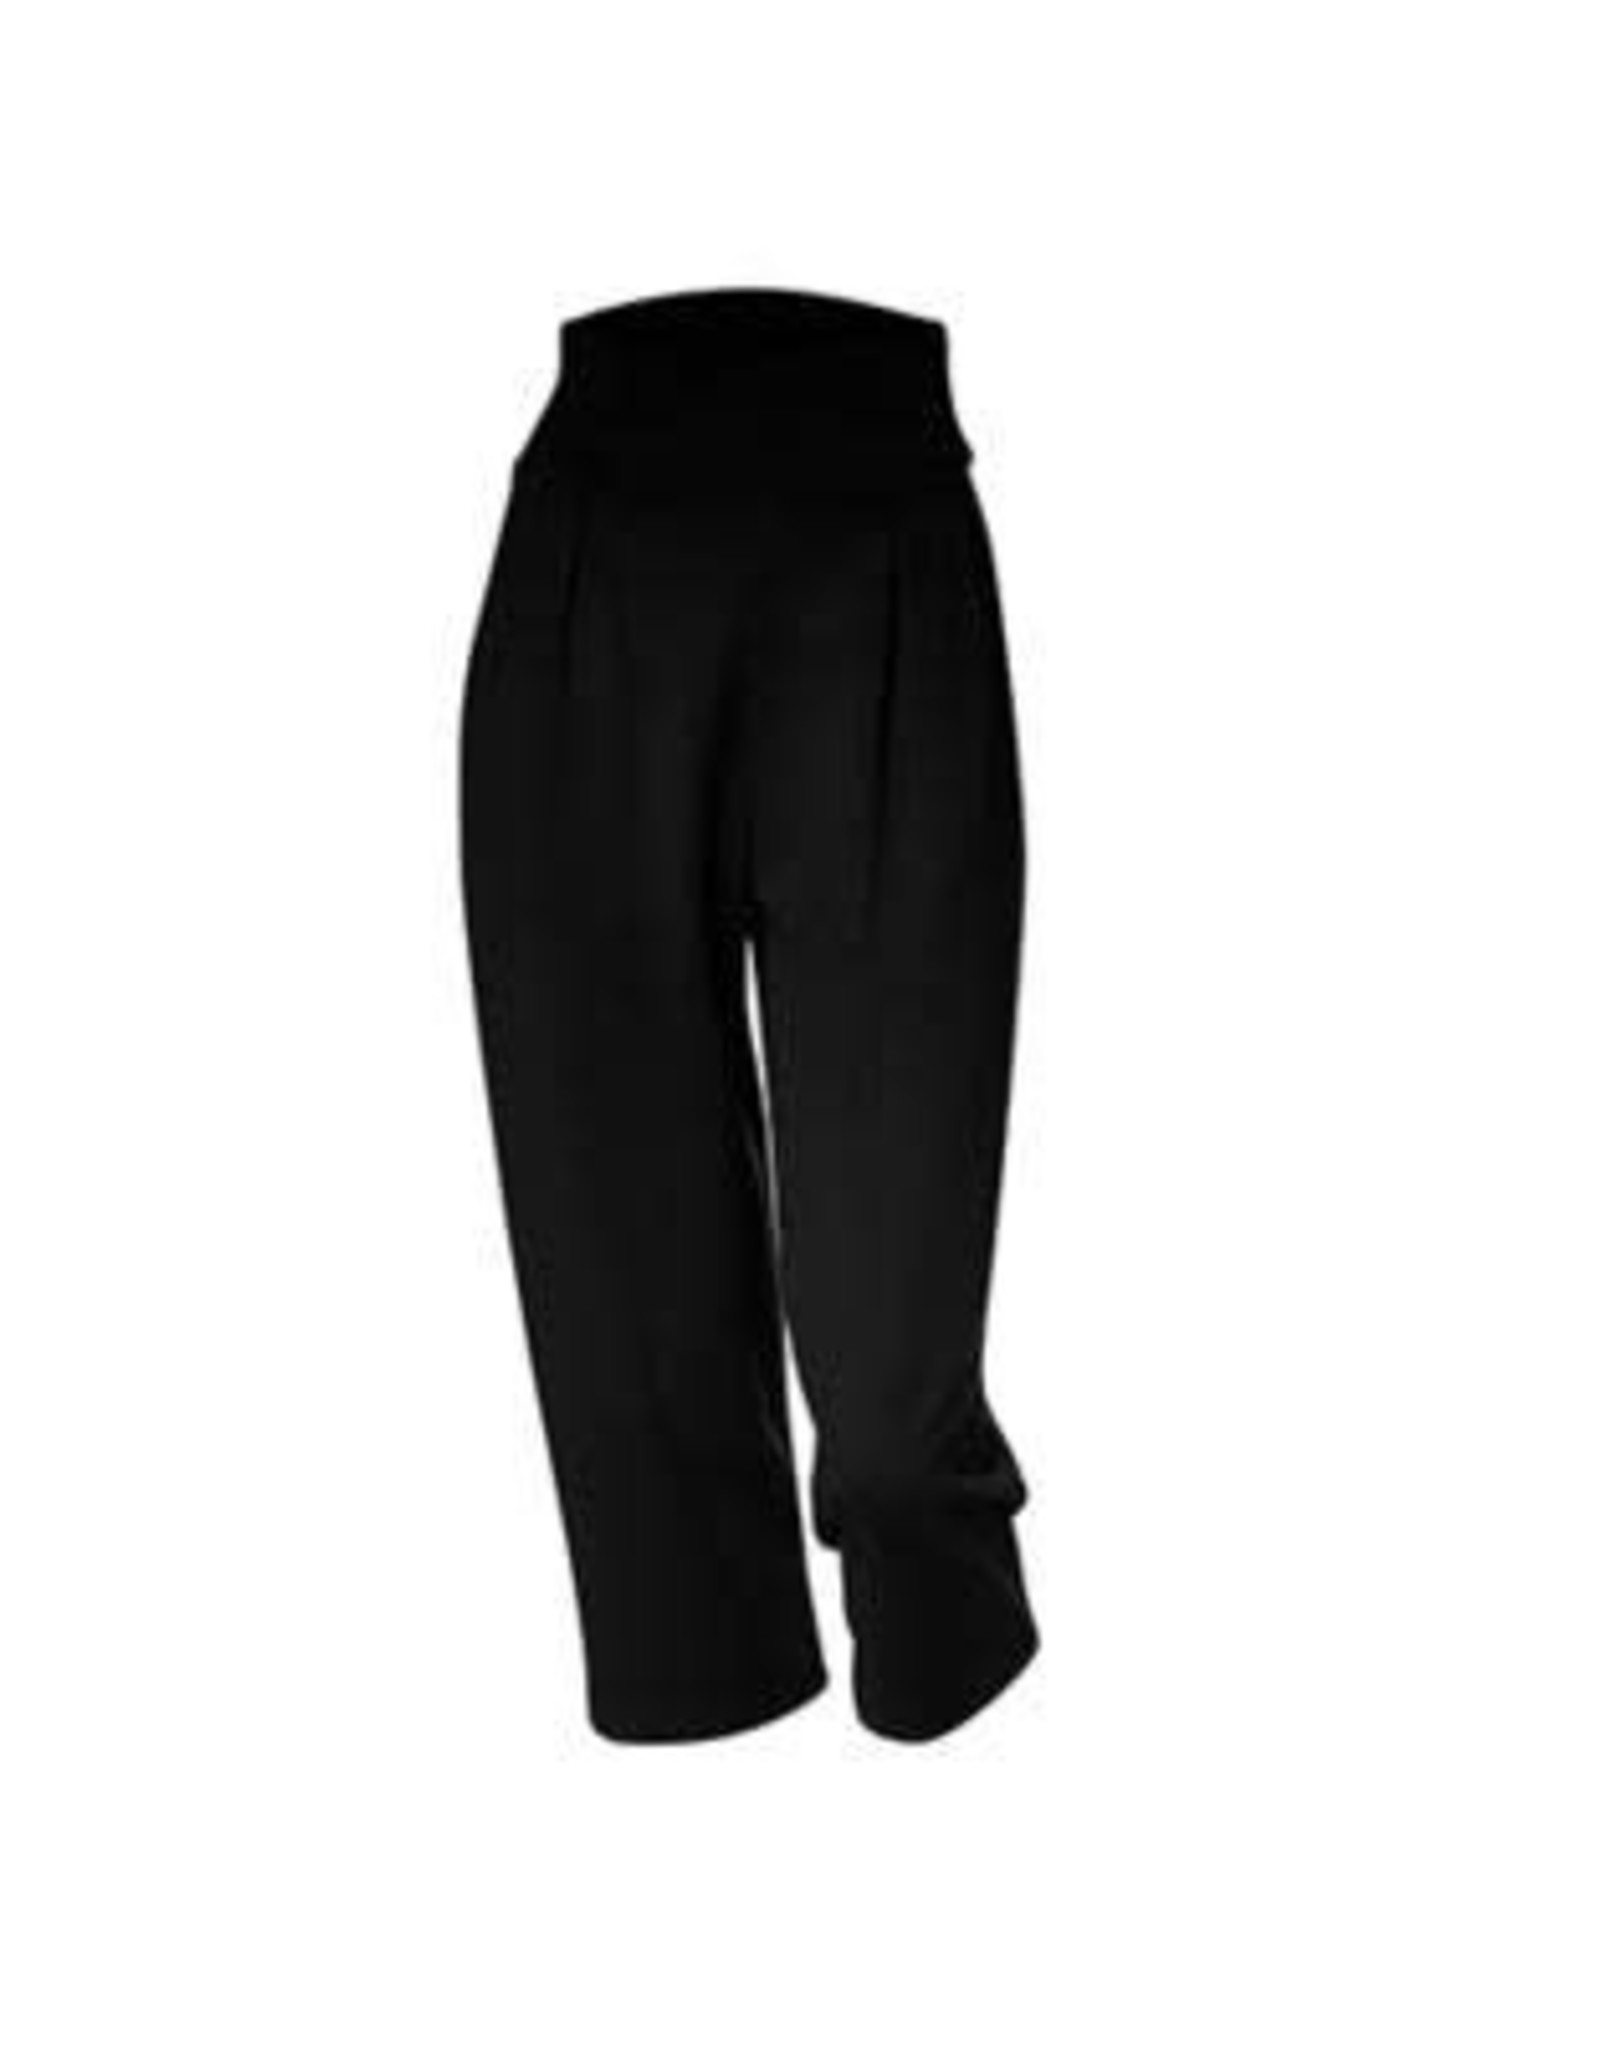 Melow Pantalon Wilfred PE20 Melow